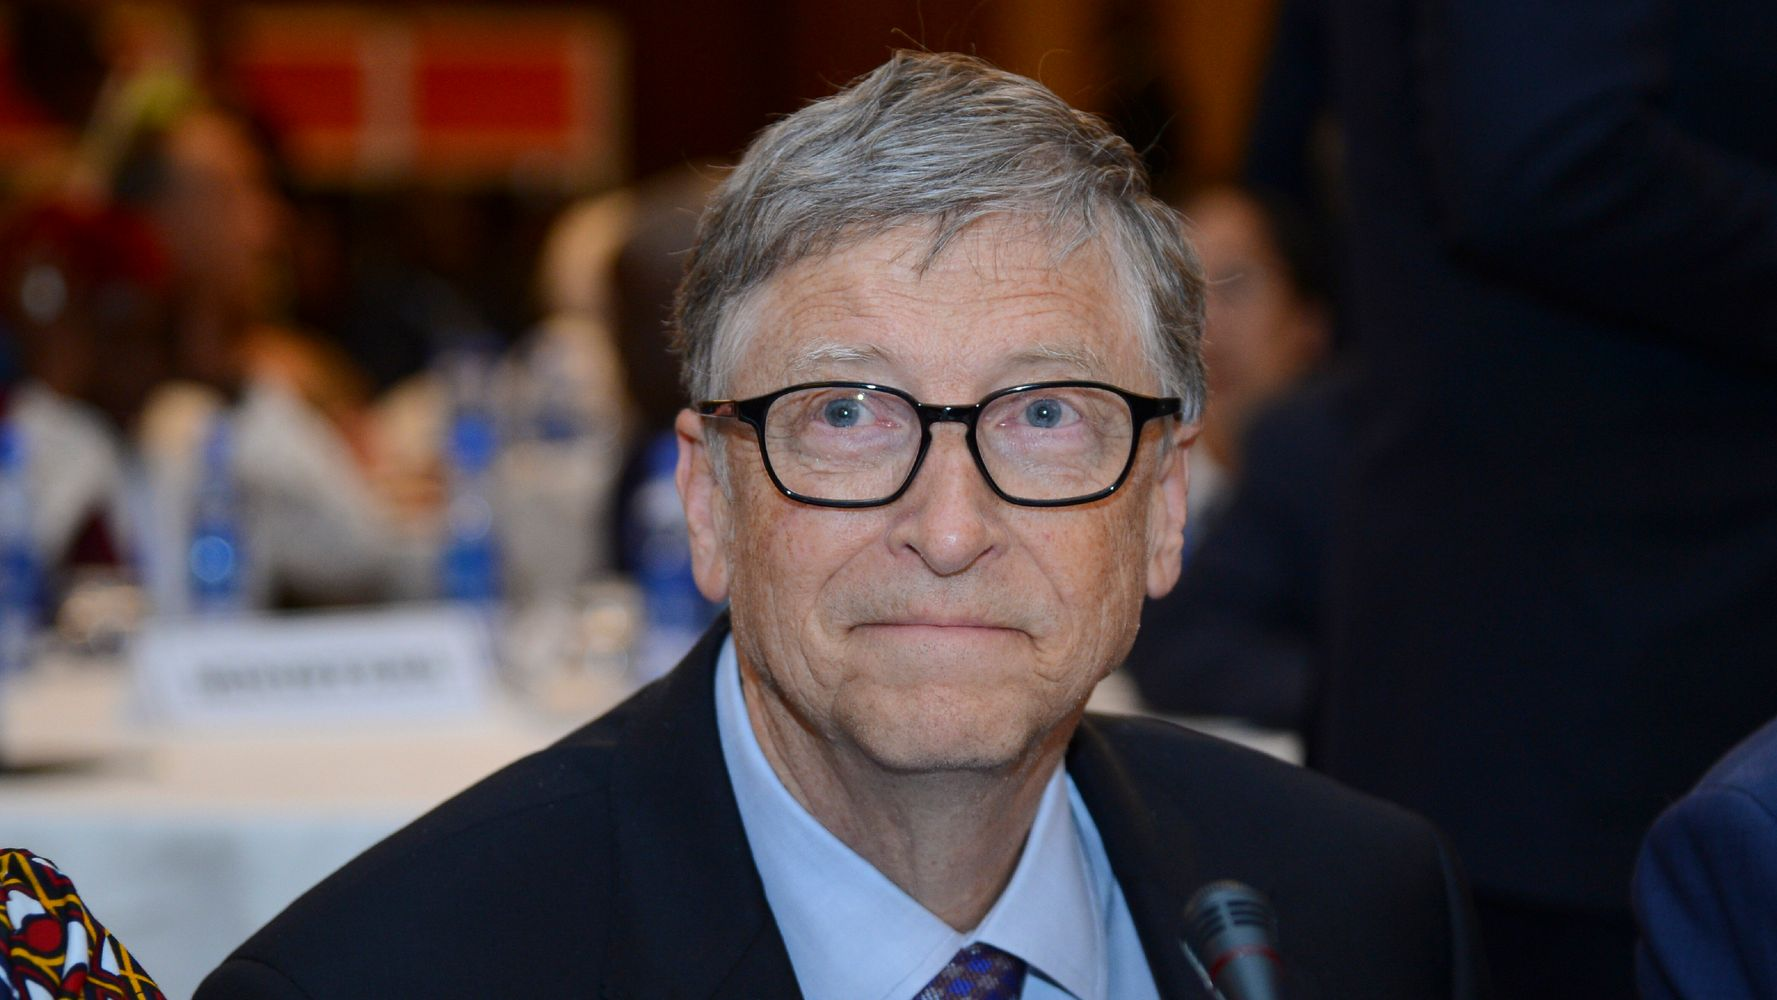 Bill Gates was ordered to stop sending flirtatious emails to a female employee in 2008